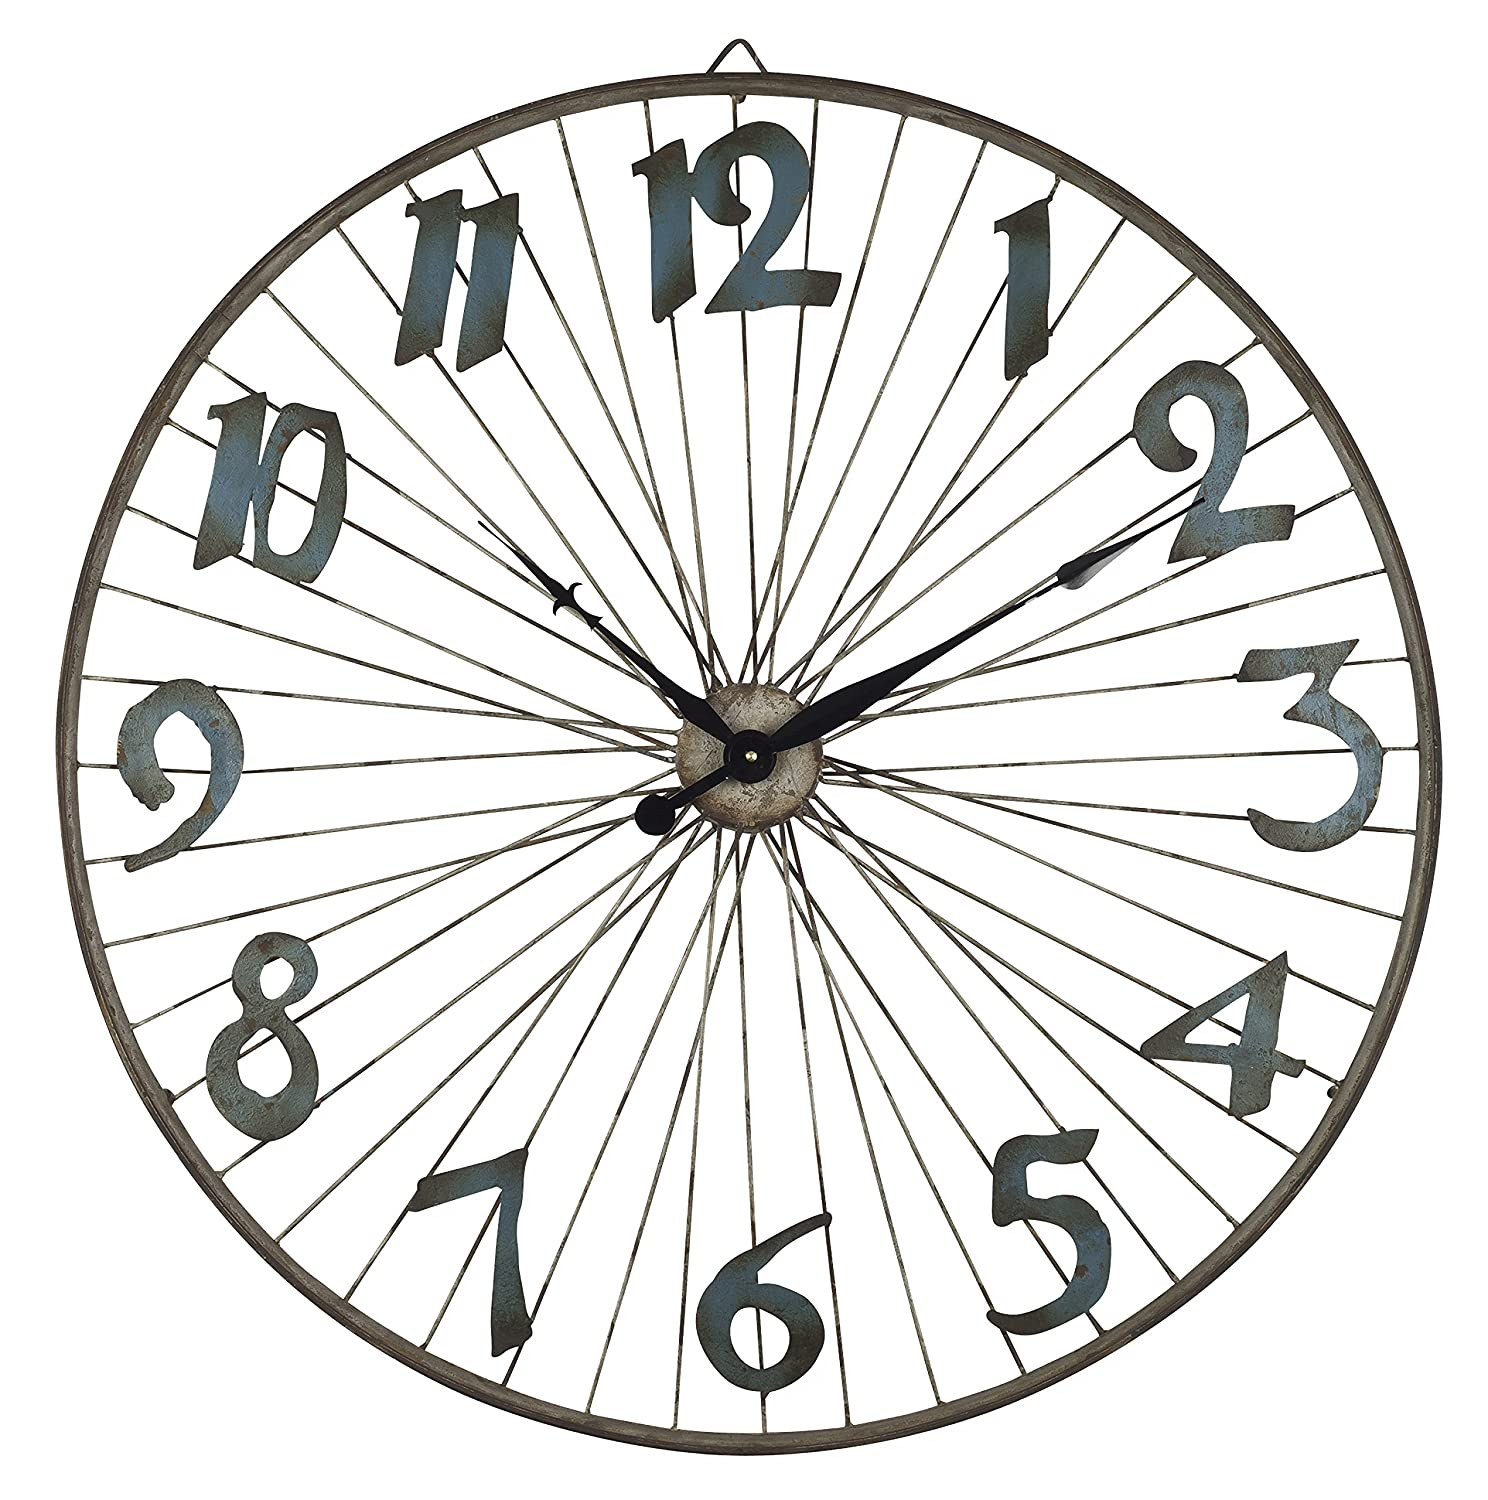 Lone Elm Studios 31.9 D Bicycle Wheel Clock Home Decor Brown The Gerson Company 92382 32InL x 32InW x 4.5InH